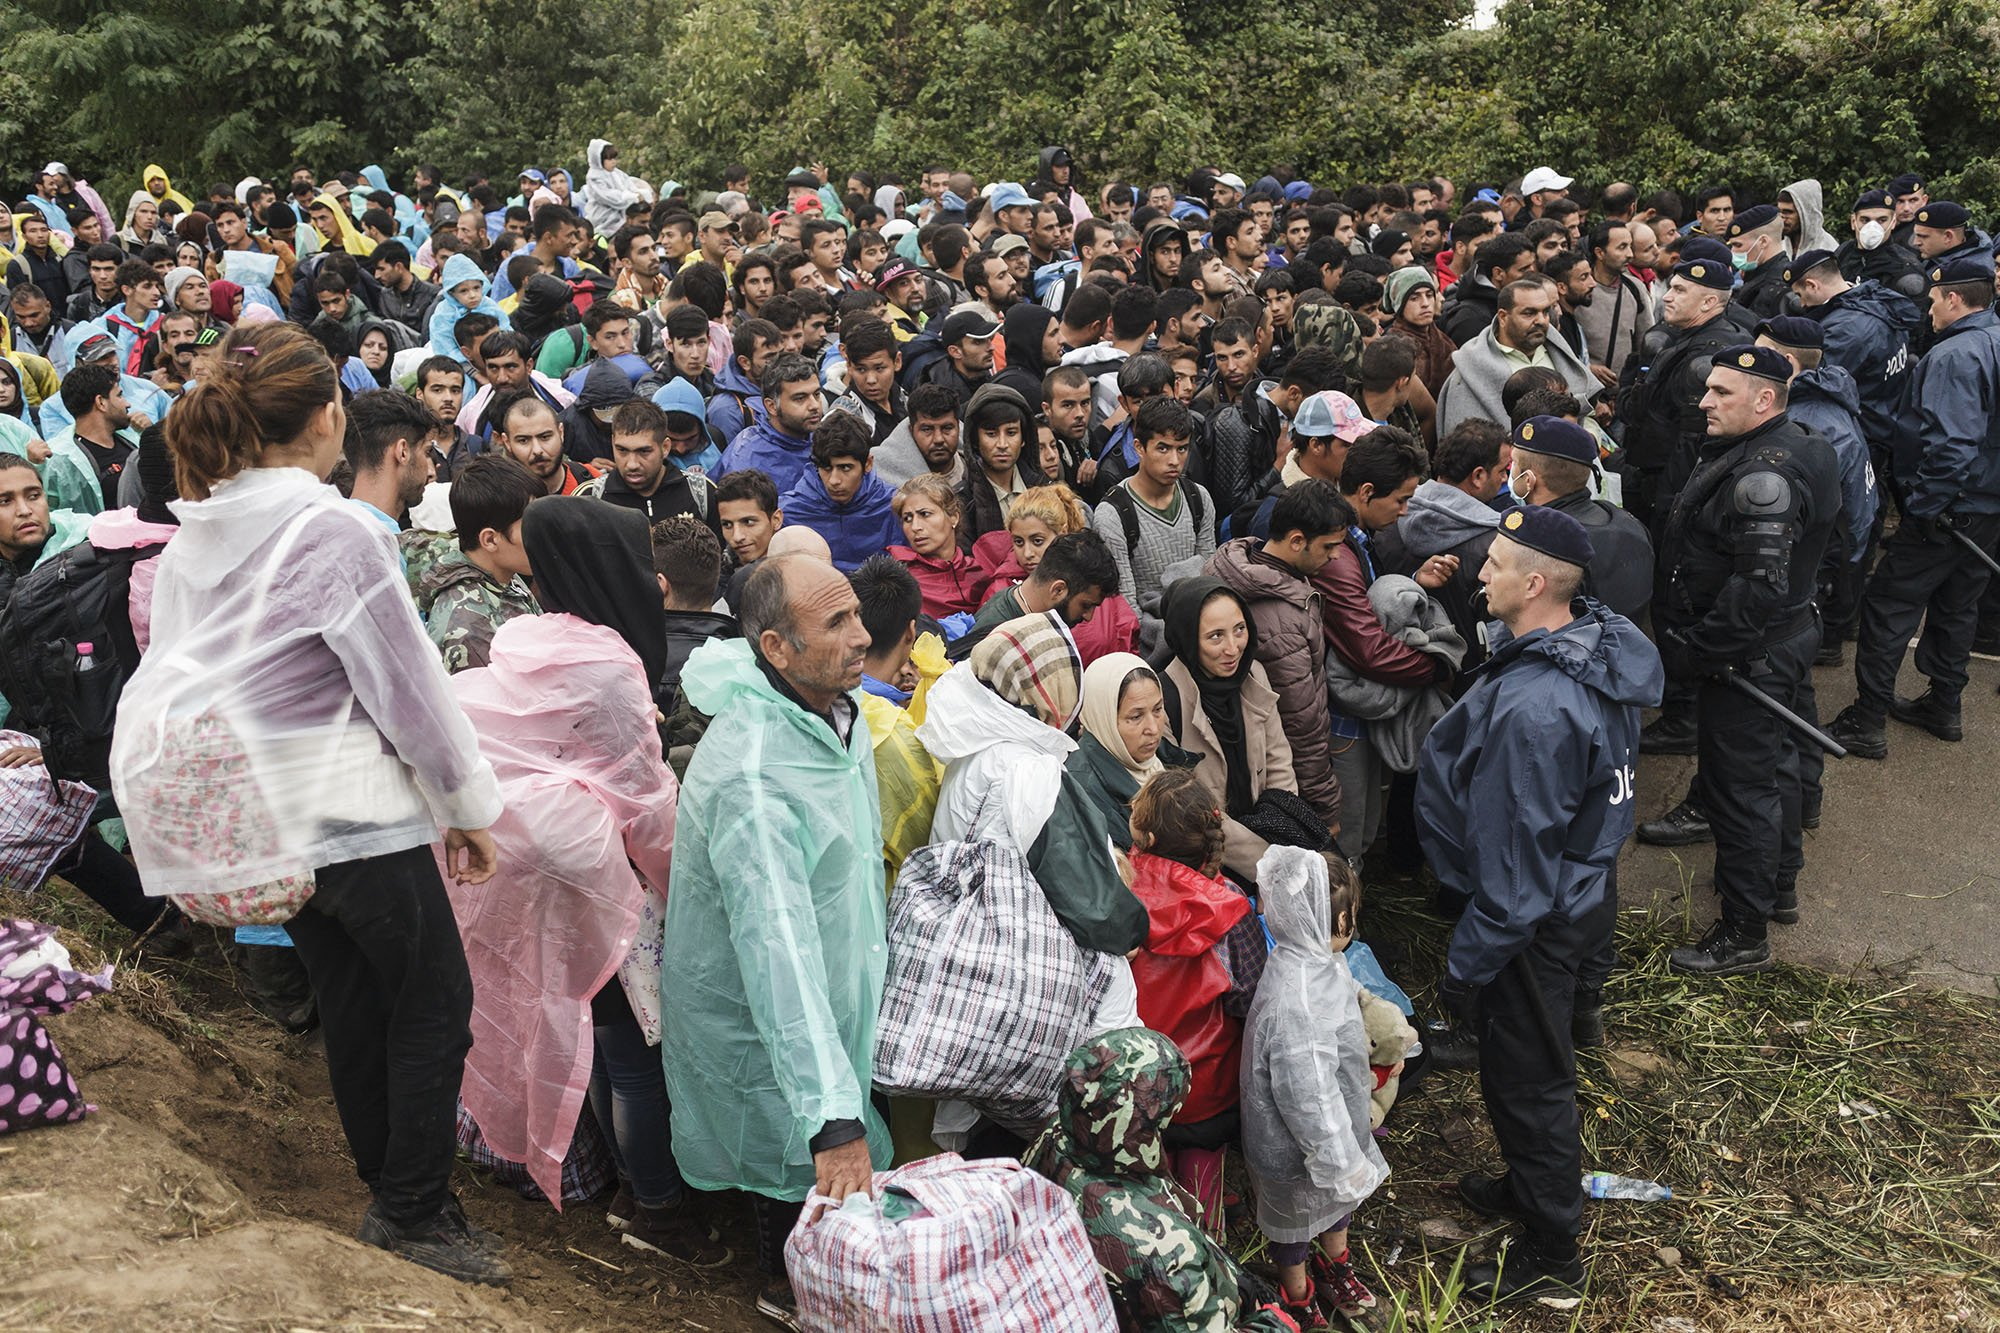 Refugees and migrants wait on the Serbian side of the Bapska border crossing, hoping to enter into Croatia. Photo: Achilleas Zavallis